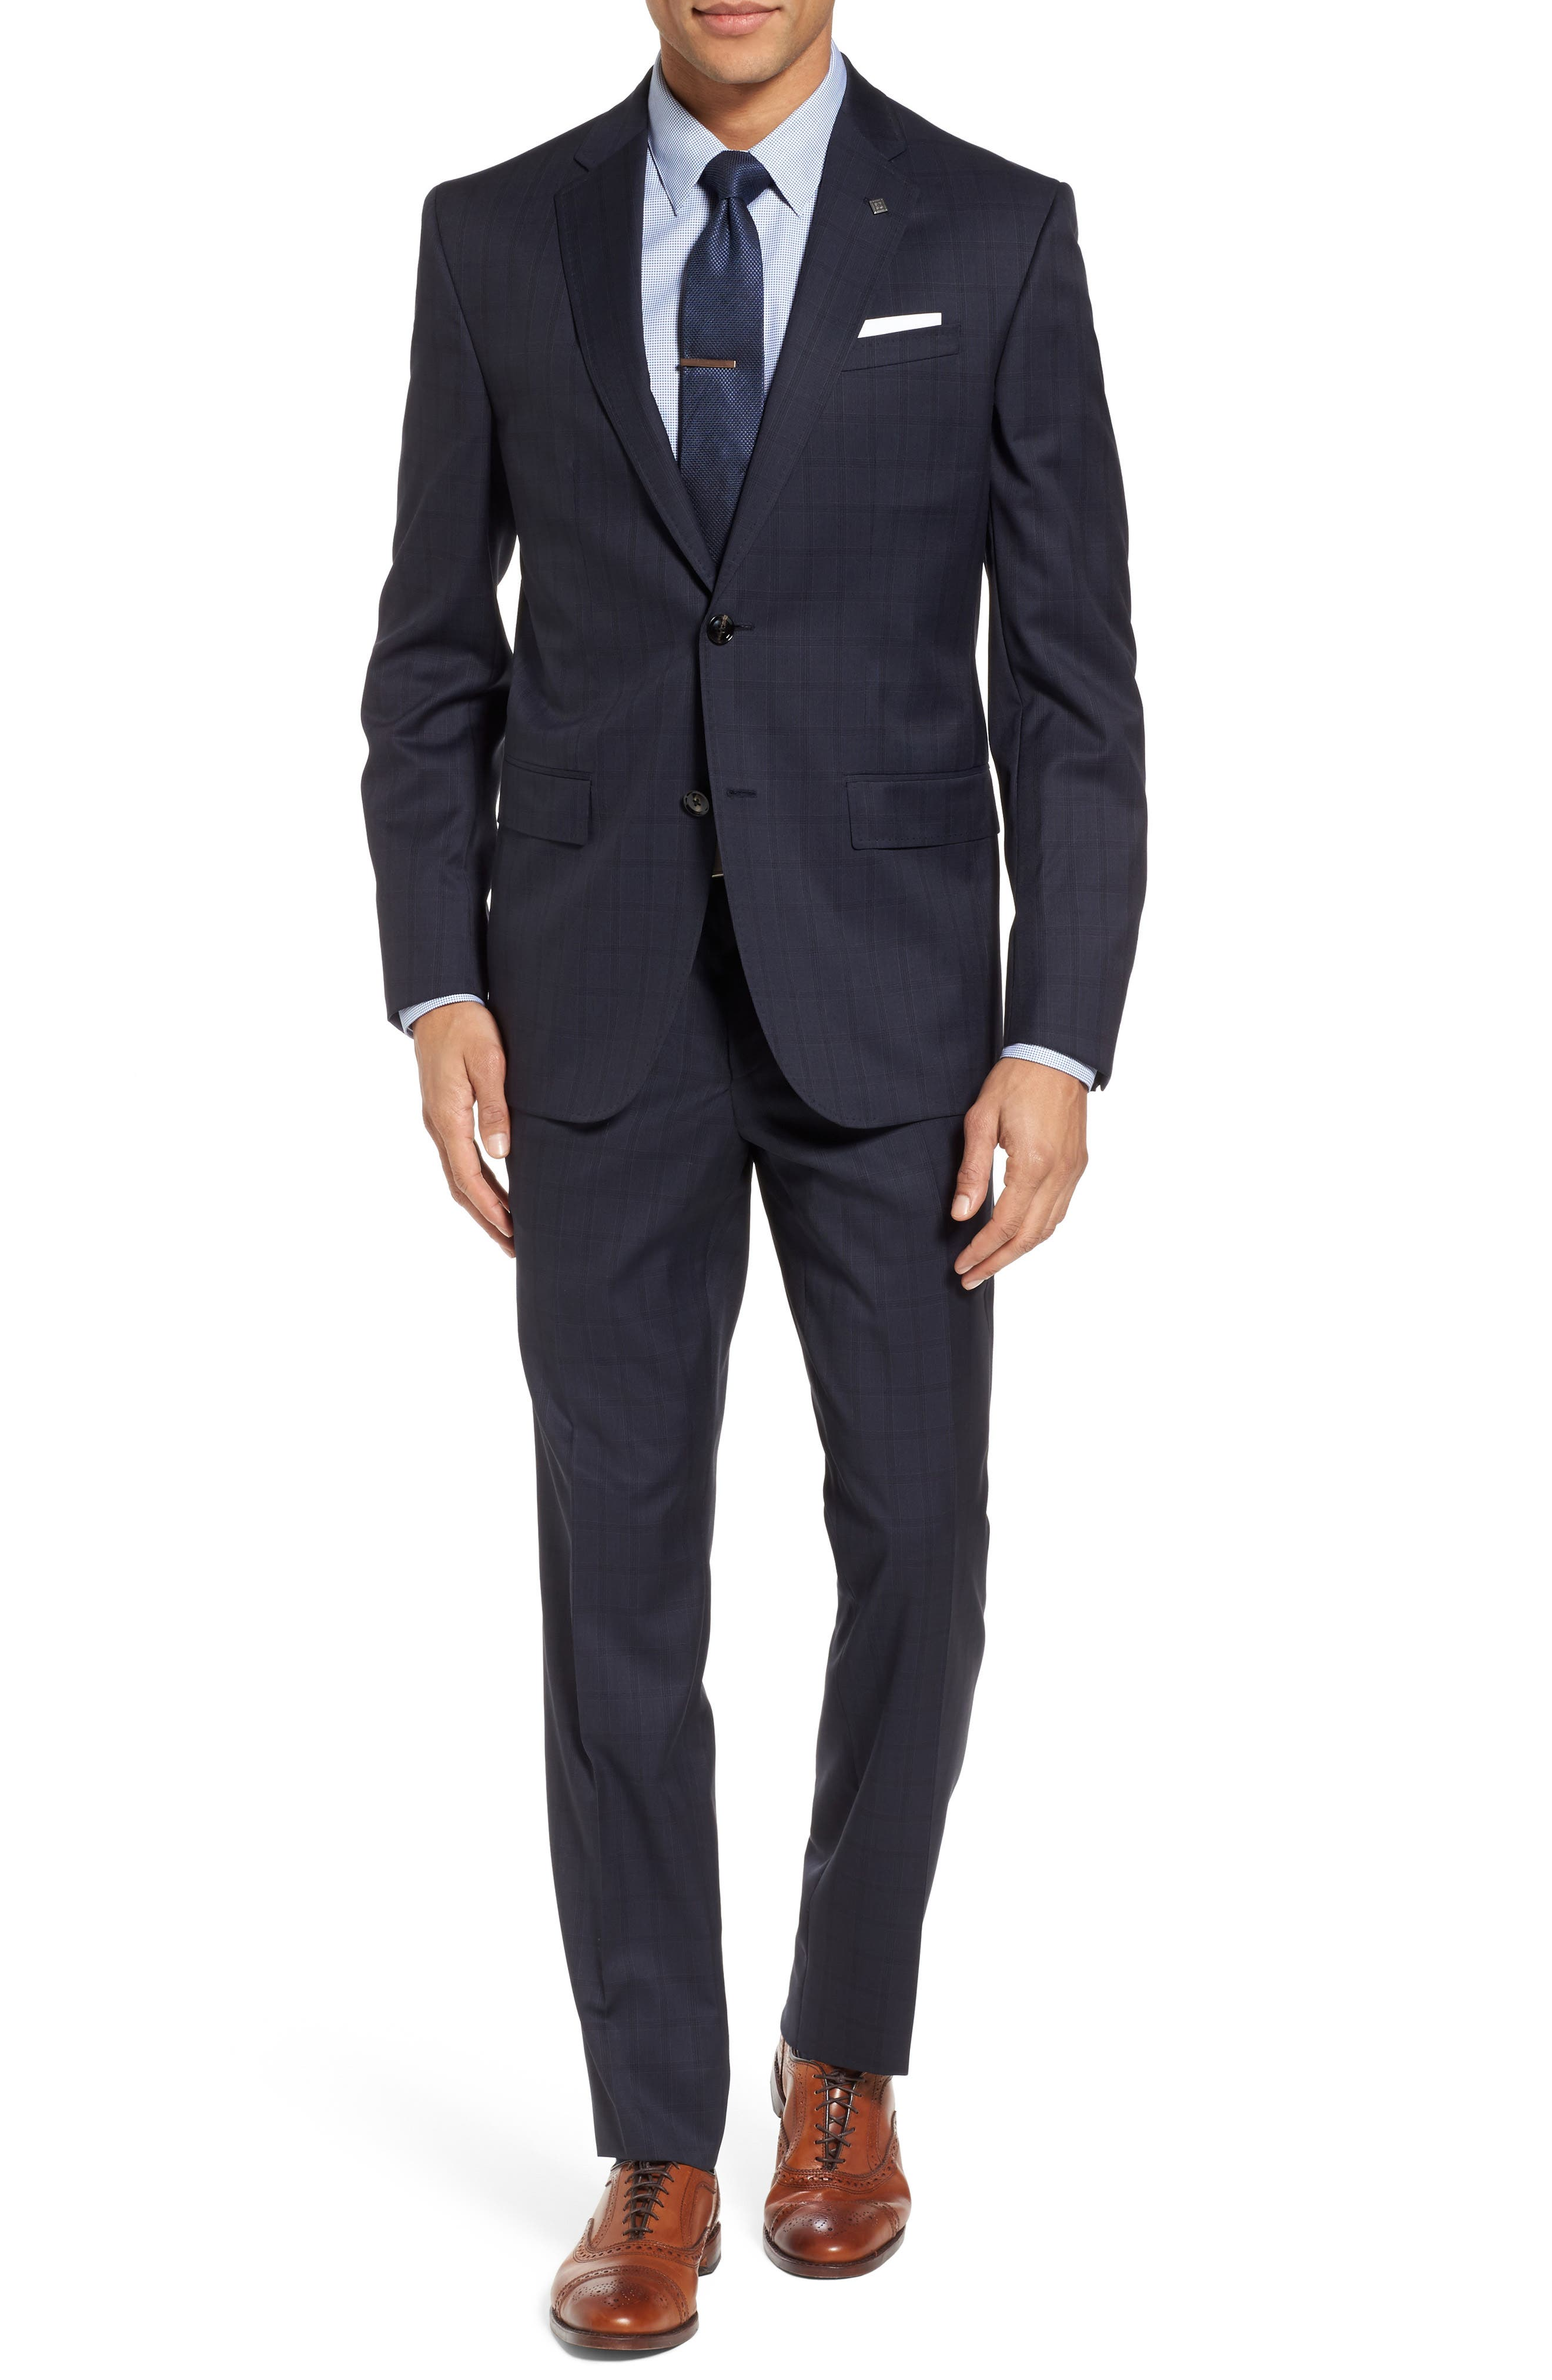 Jay Trim Fit Check Wool Suit,                             Main thumbnail 1, color,                             Navy